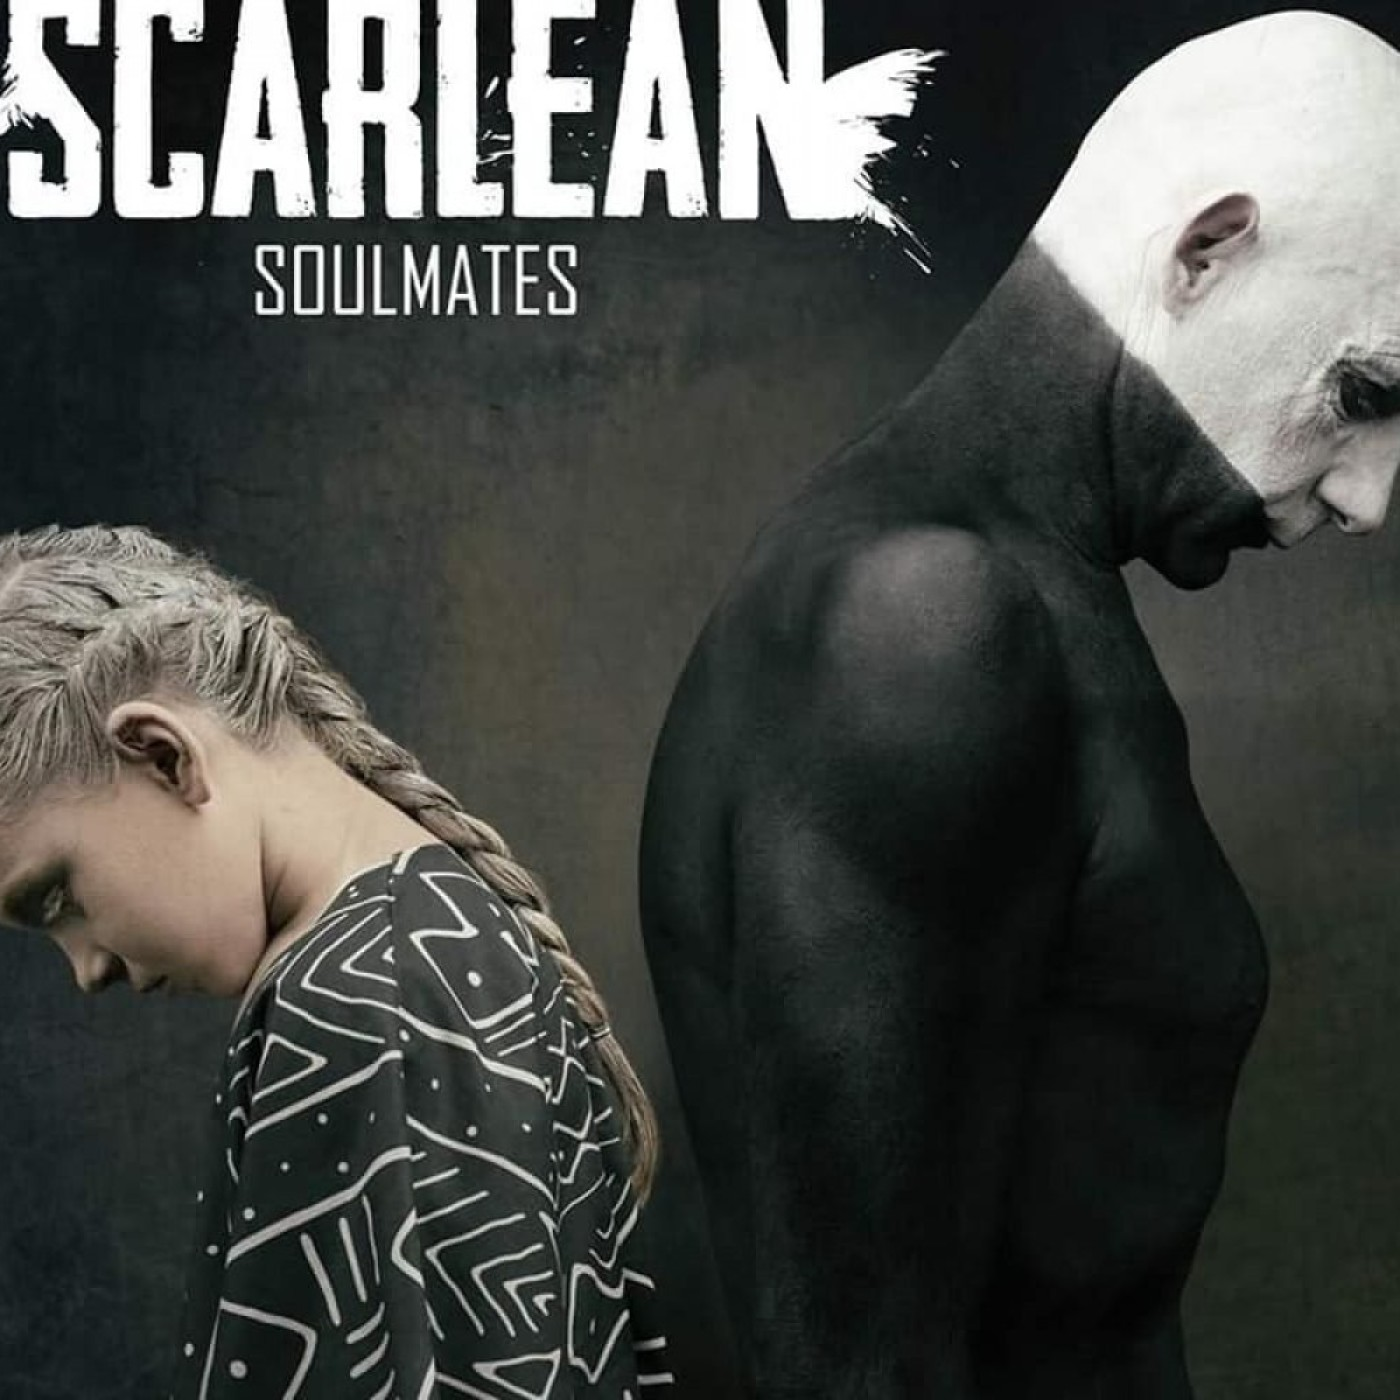 213Rock Podcast Harrag Melodica Itw with Alex of Scarlean New album SoulMates  27 03 2020